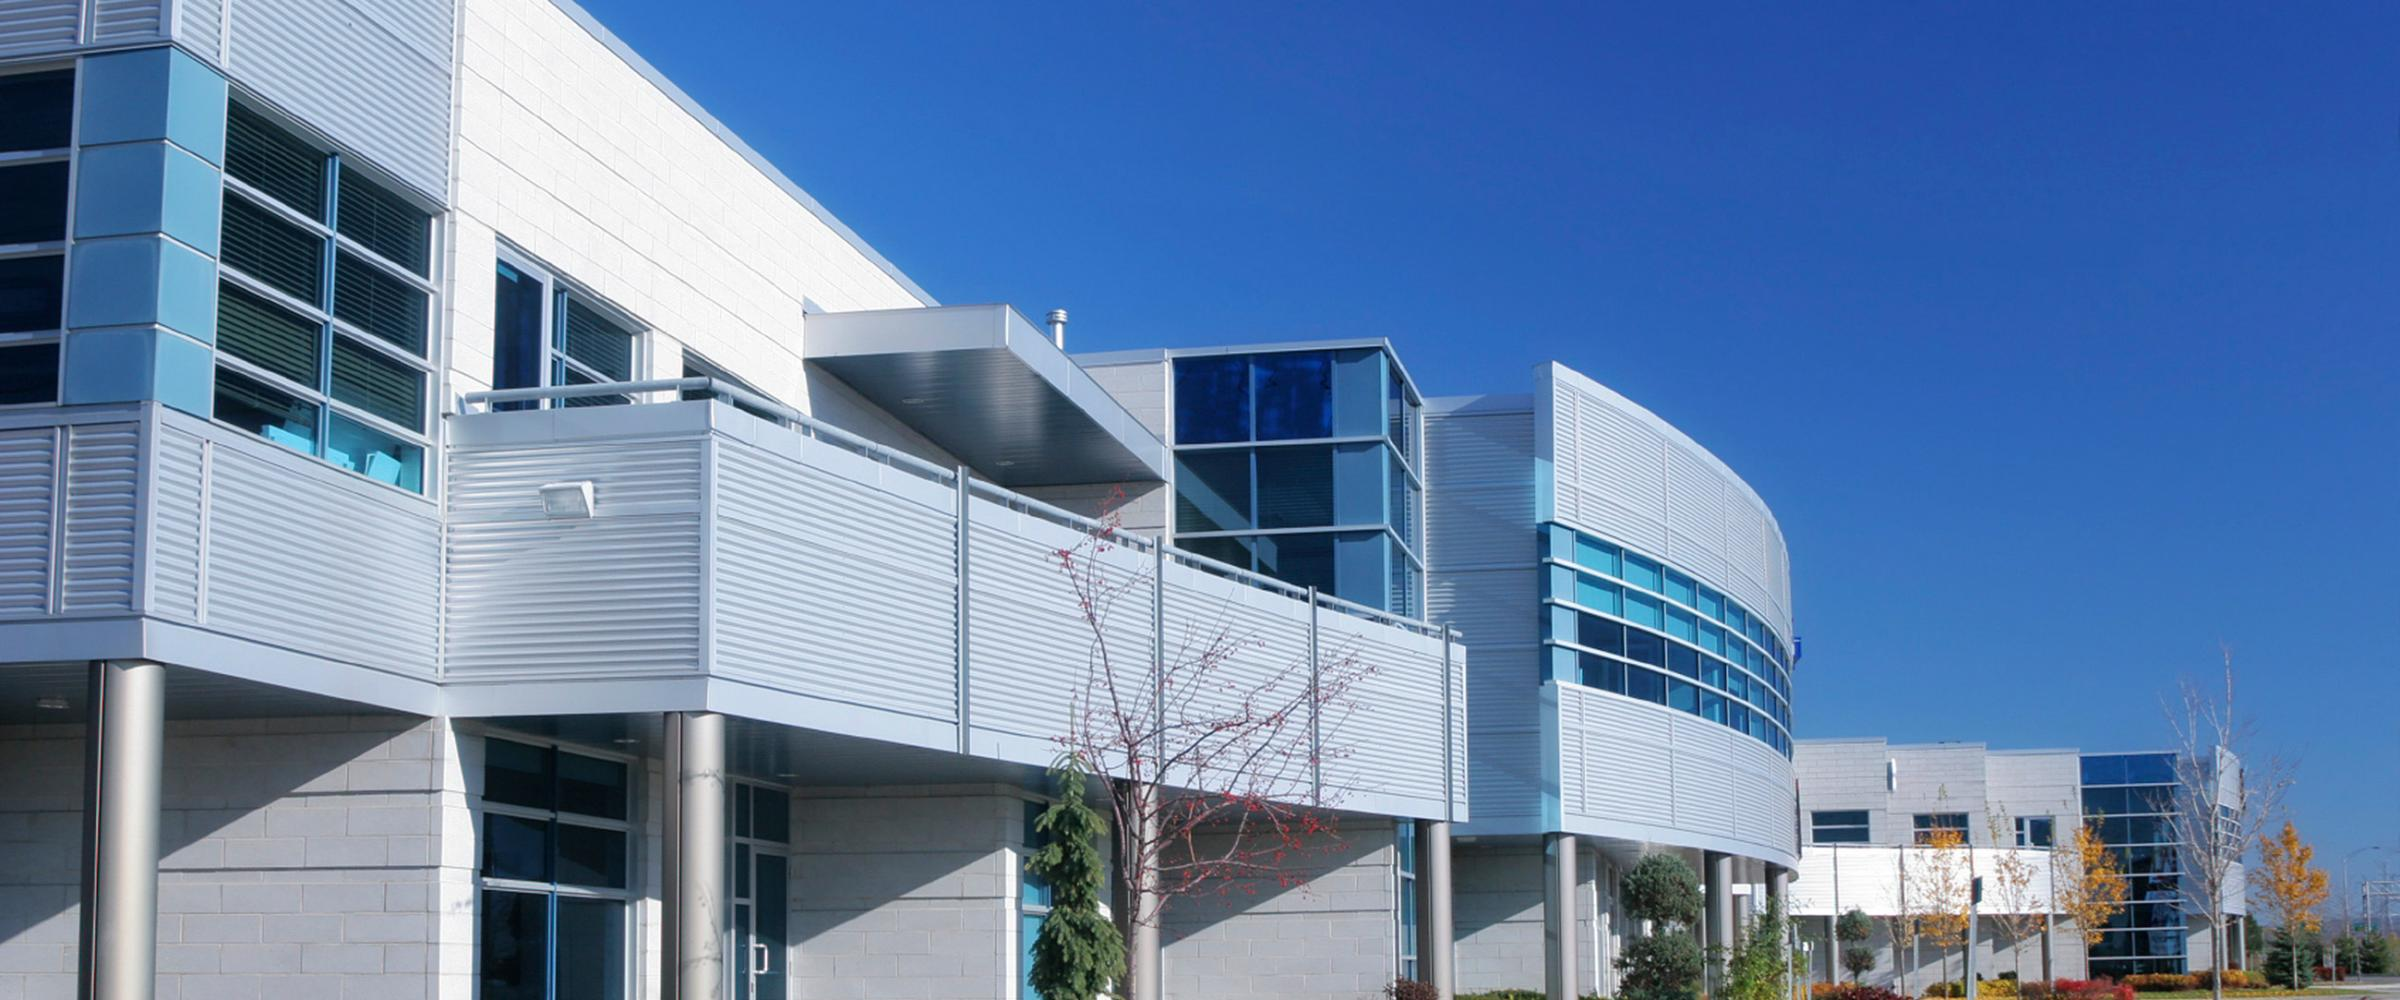 Exterior of a modern commercial building.